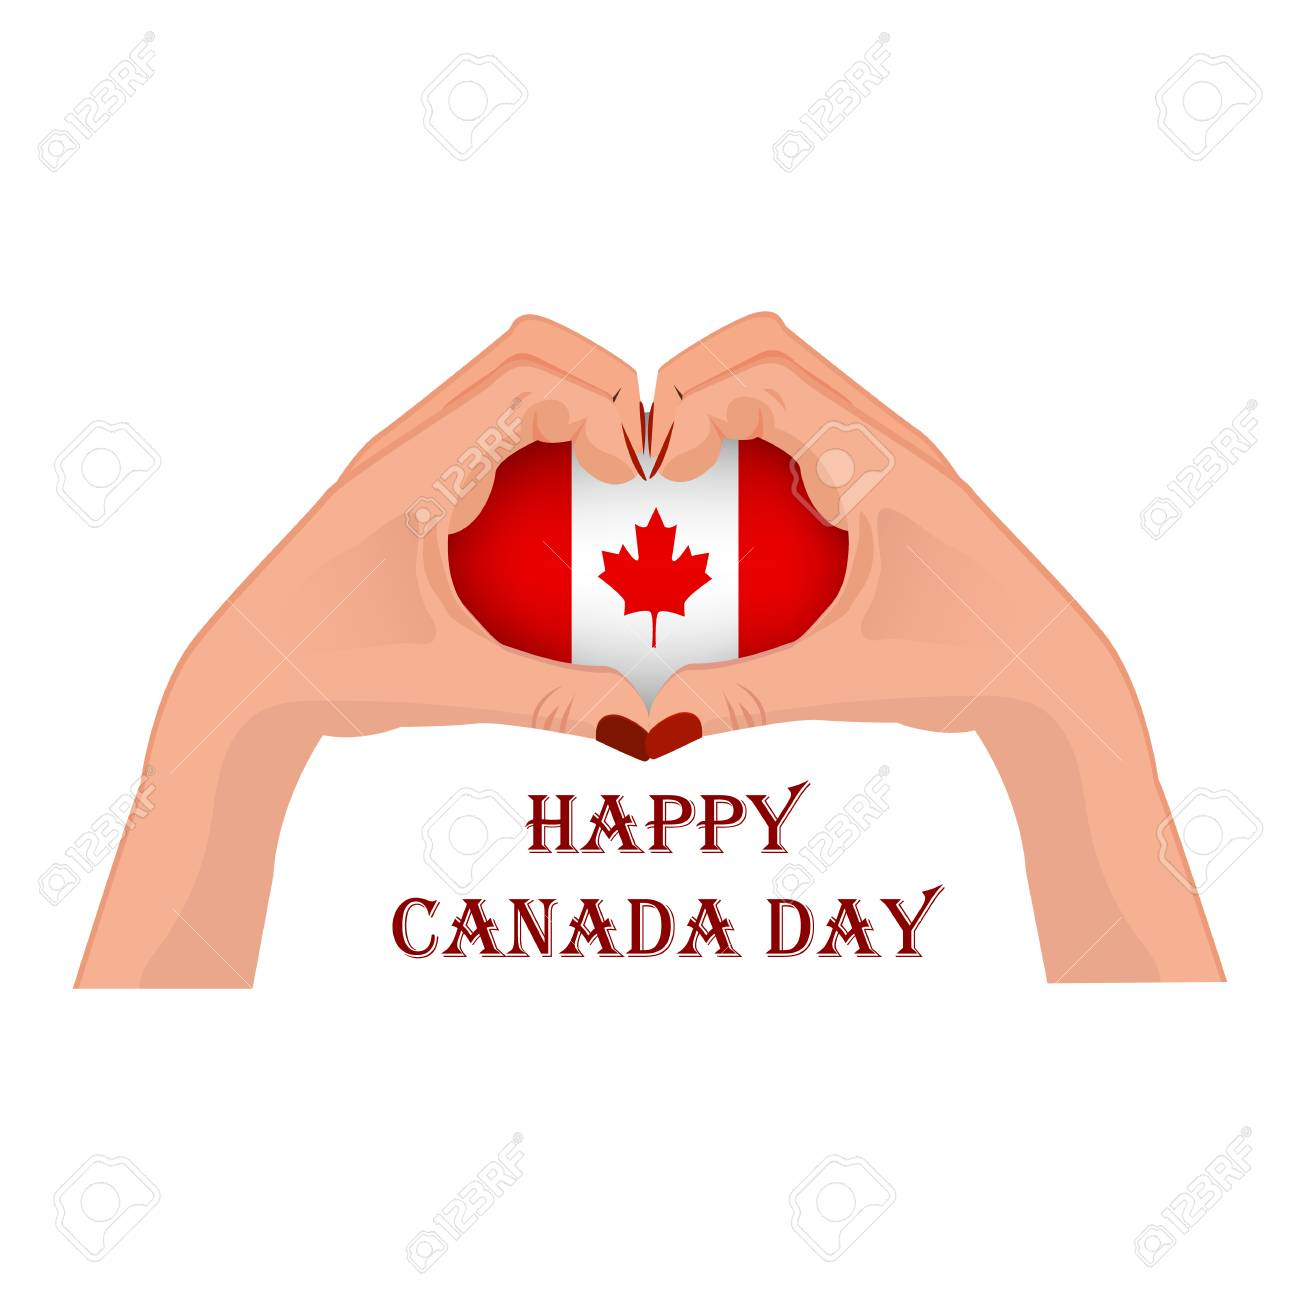 Canada Day, vector illustration with two hands in the shape of the heart, inside the national flag isolated on a white background - 103984251